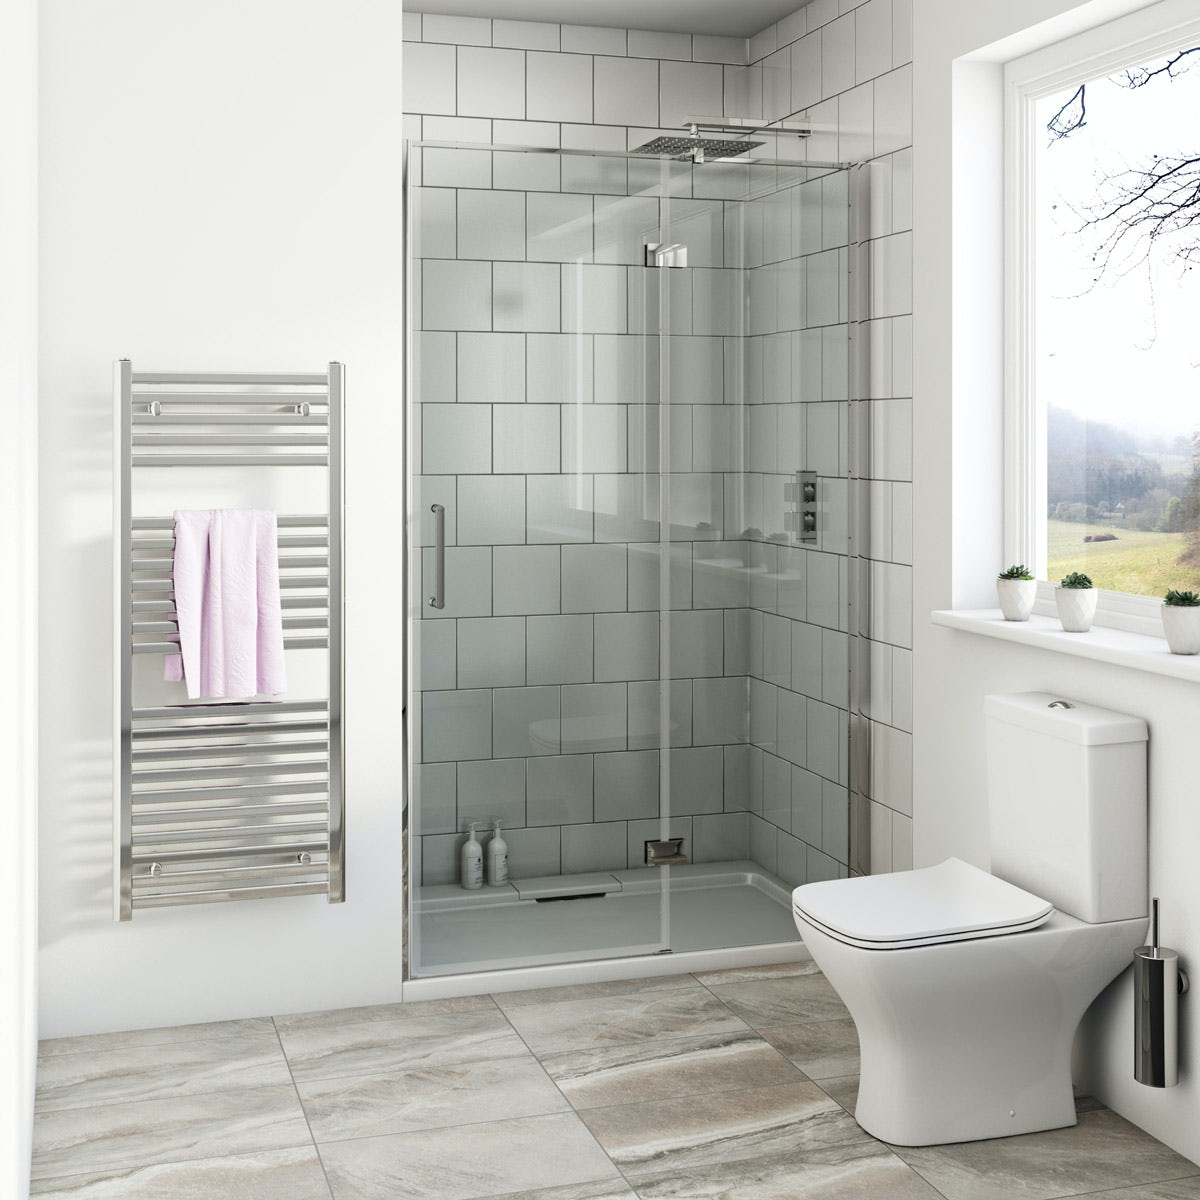 Mode Beck premium 8mm hinged easy clean shower door